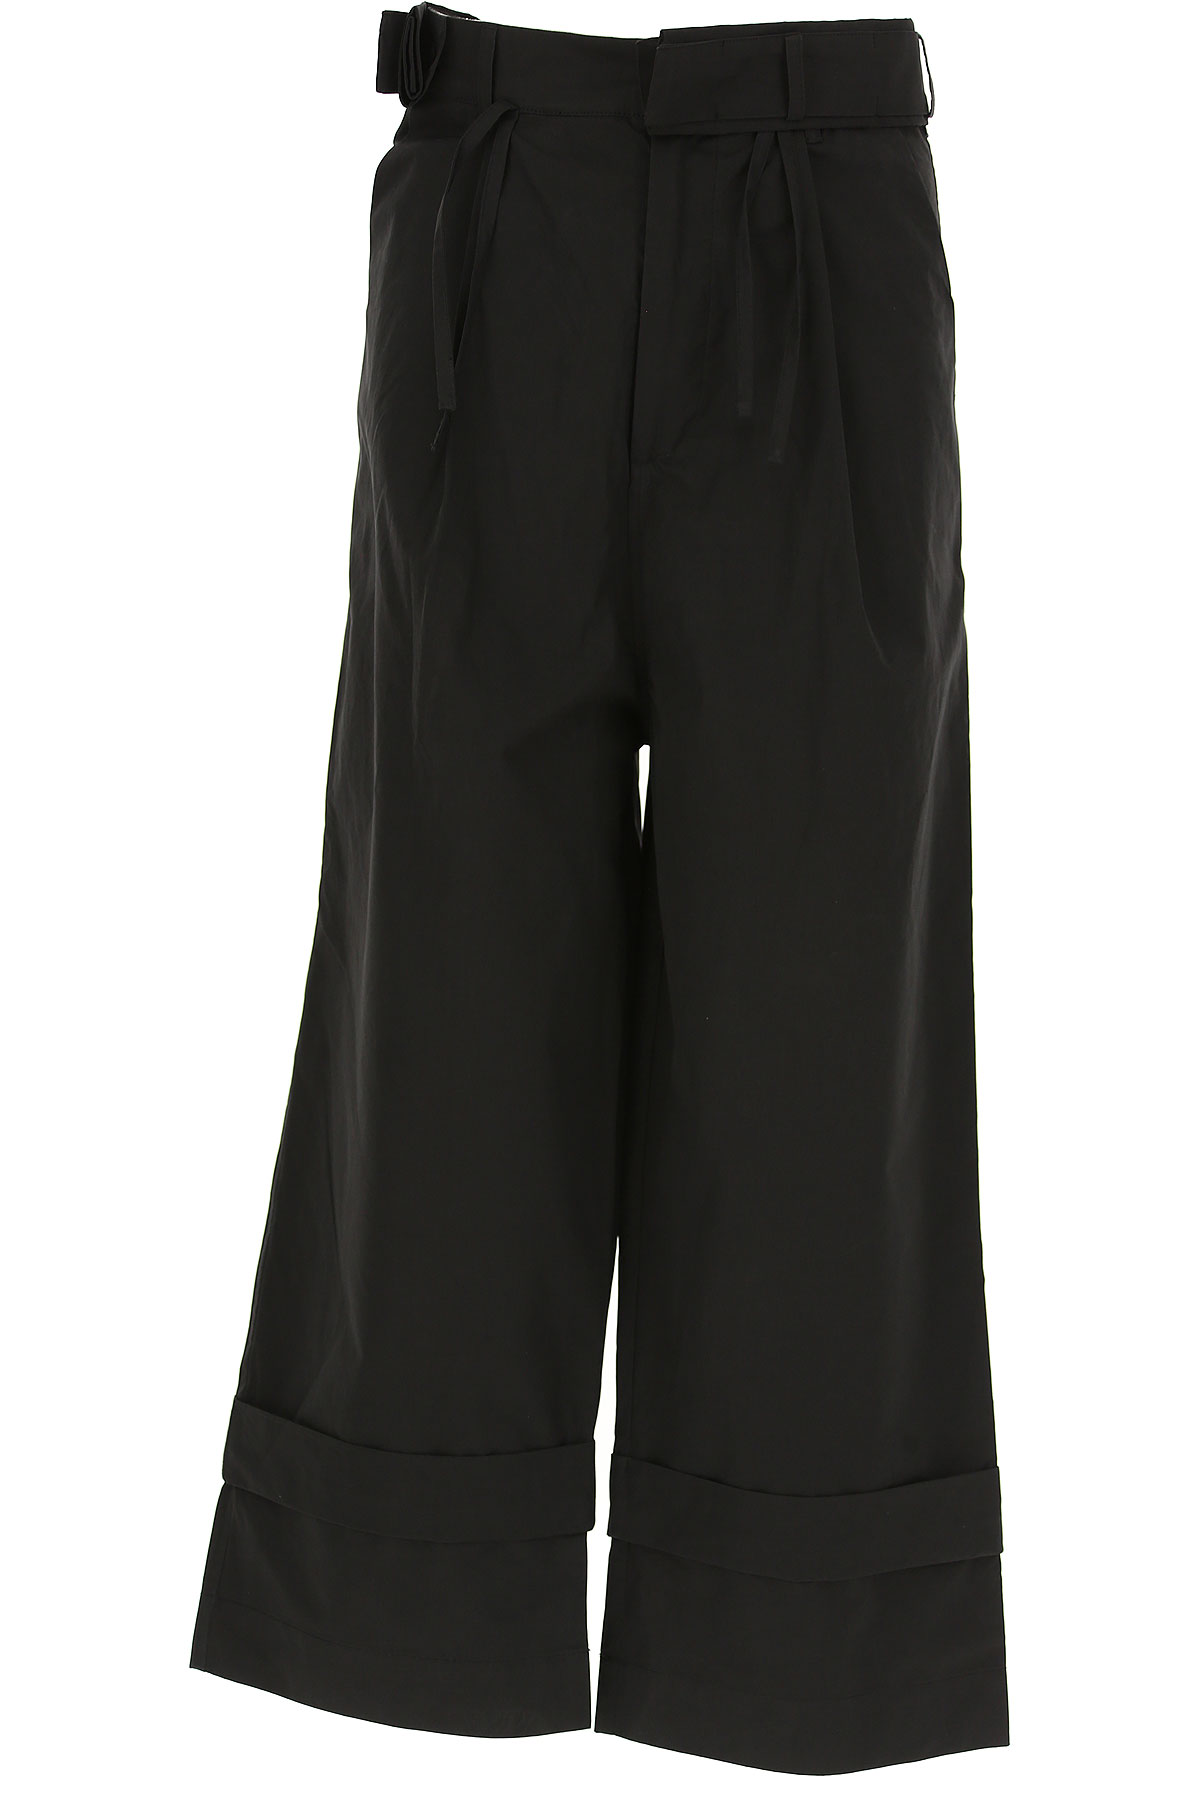 Image of Craig Green Pants for Men On Sale in Outlet, Black, Cotton, 2017, M S